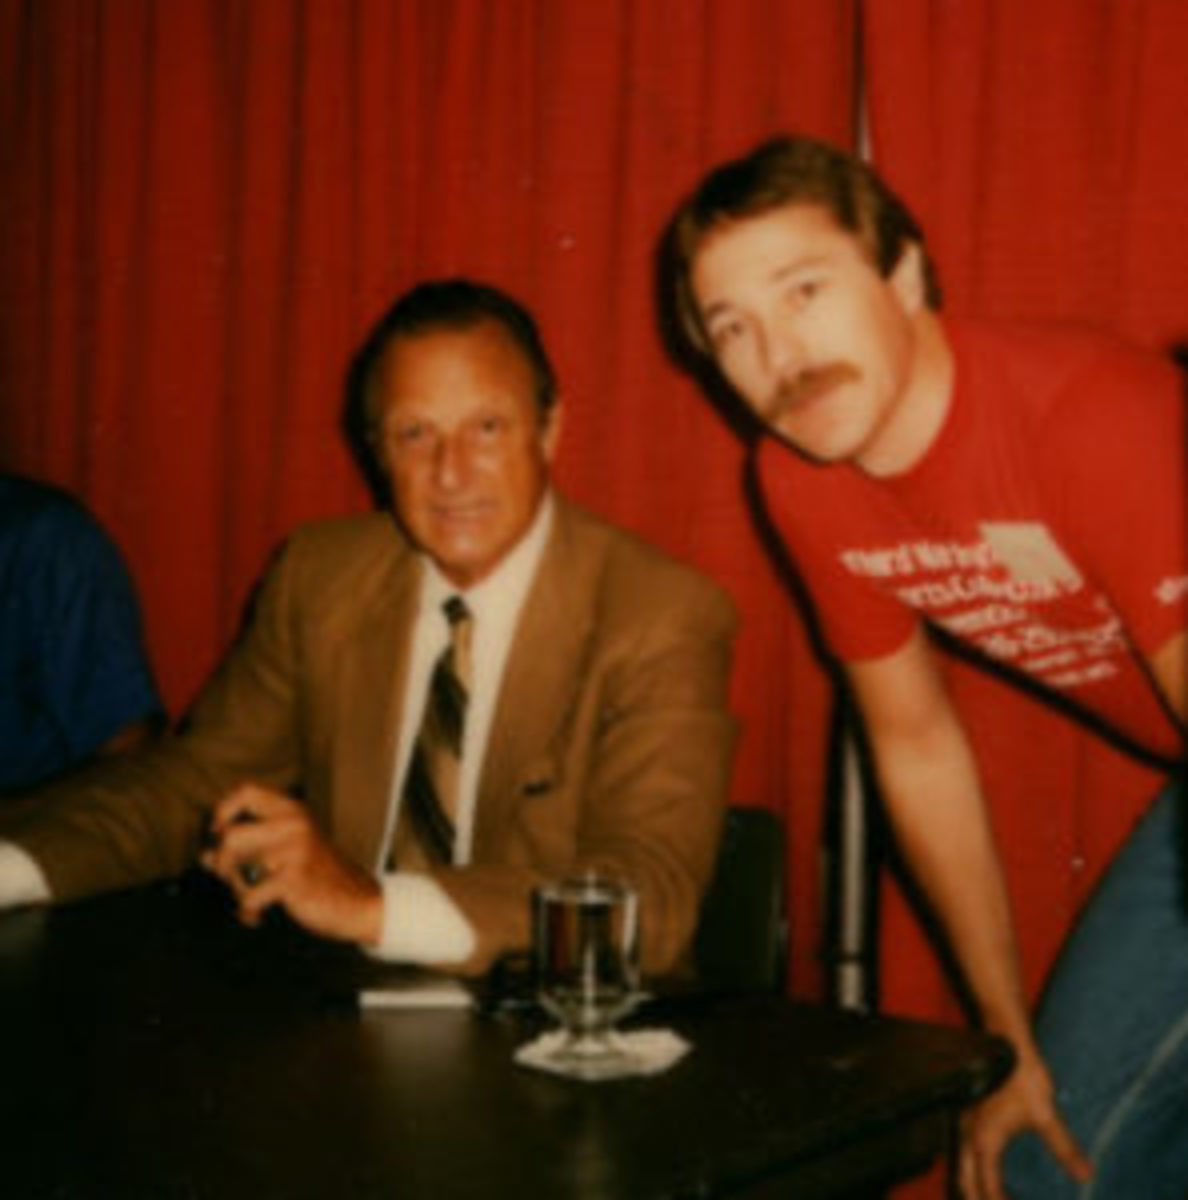 B.A. Murry met Stan Musial at this 1983 Kansas City show. (Photo courtesy B.A. Murry)